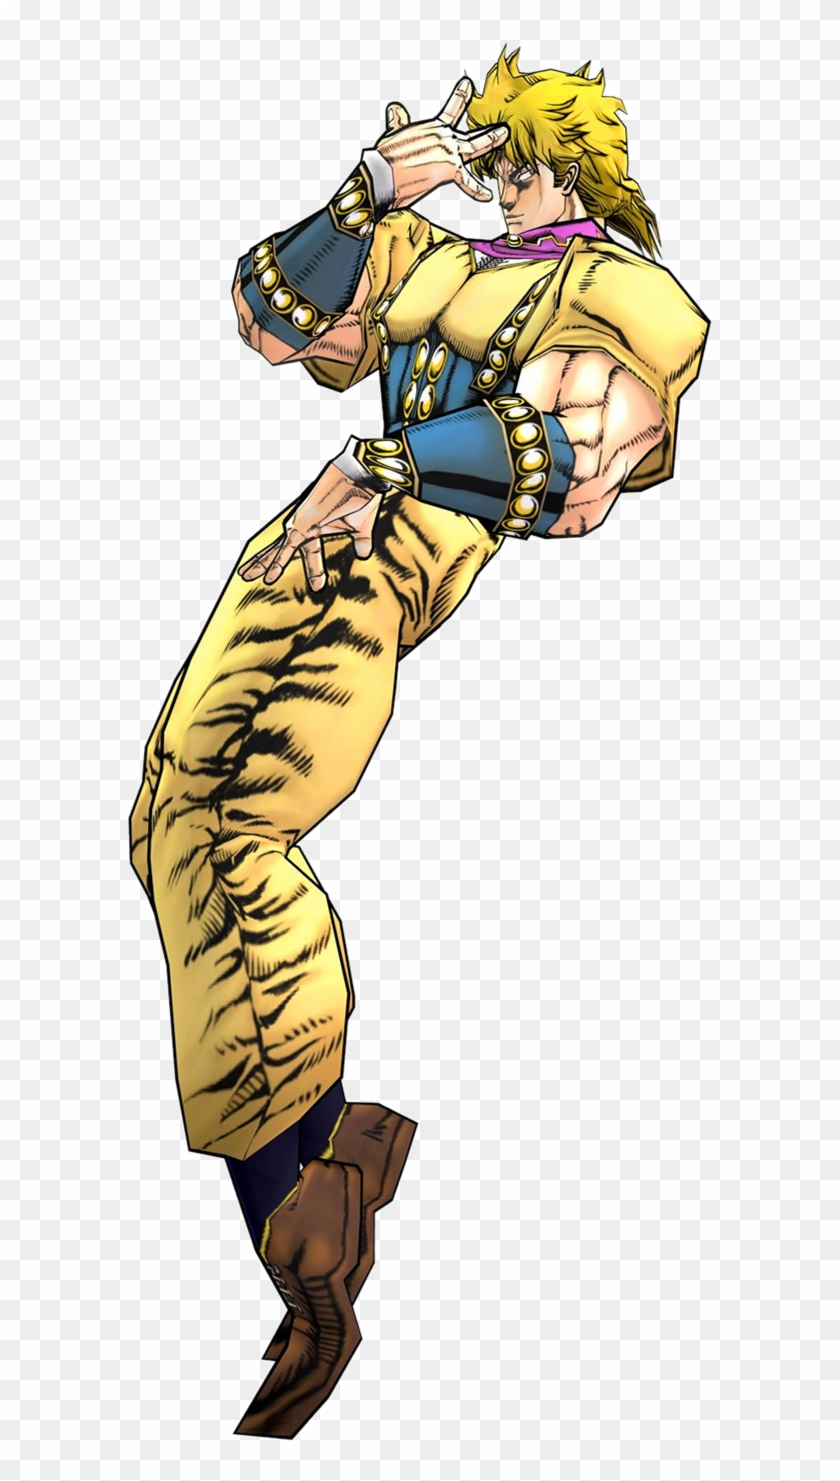 87-879020_transparent-dio-brando-model-from-phantom-blood-dio.jpg